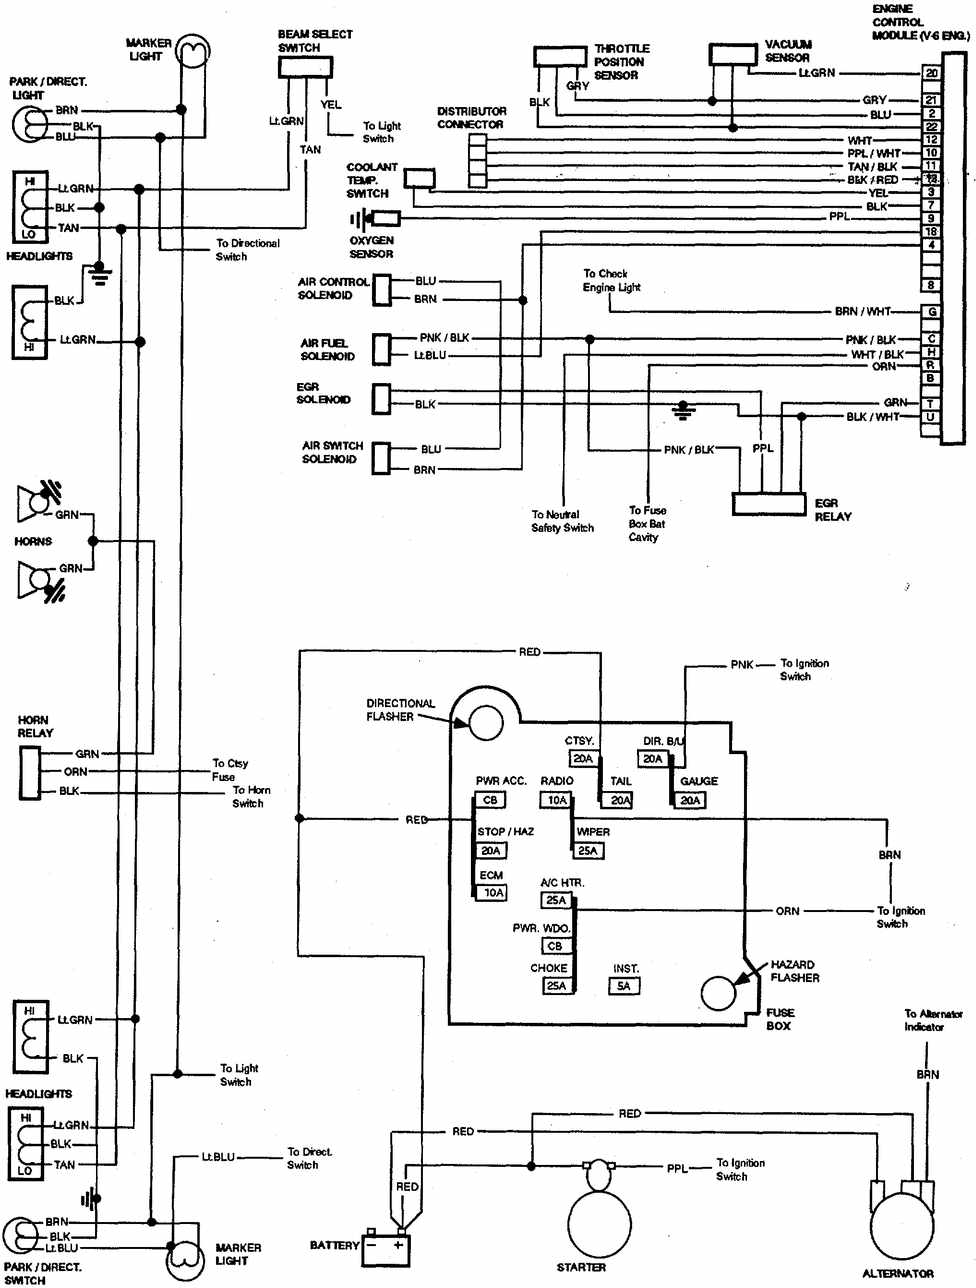 1985 chevy truck wire diagram